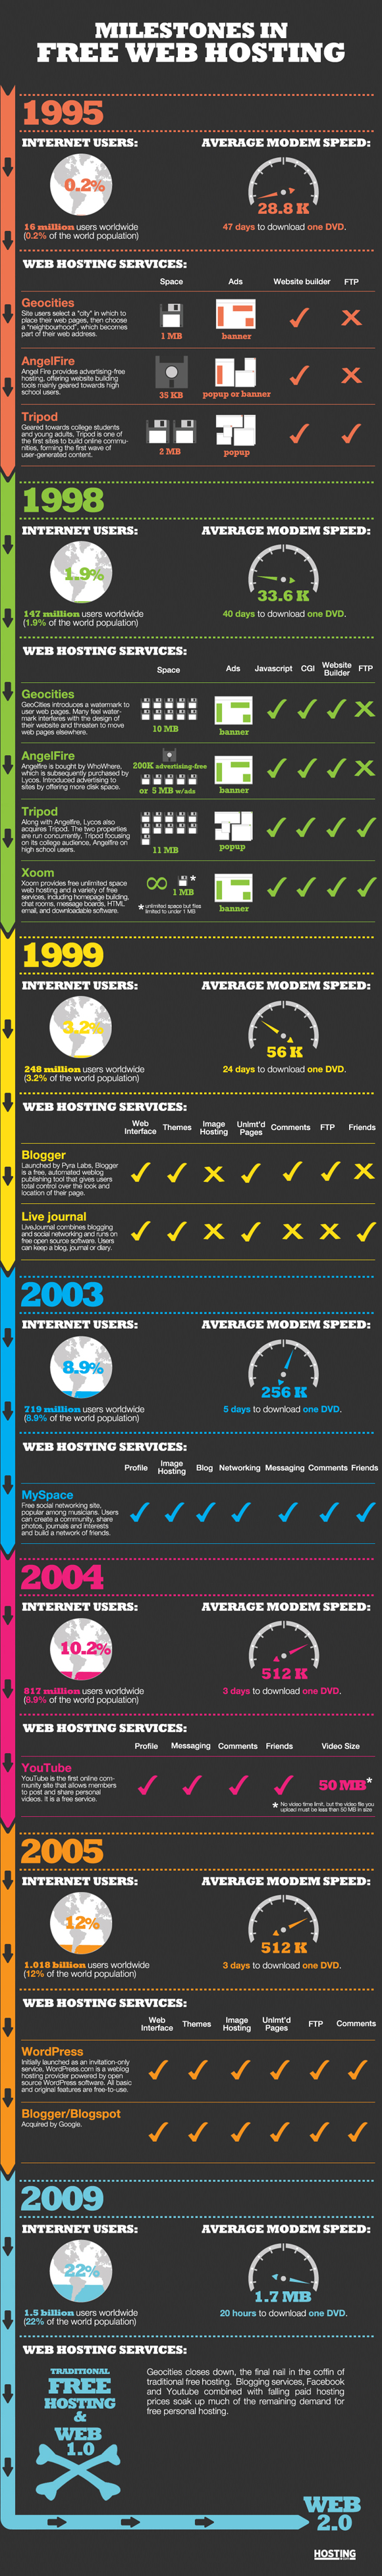 A History of Free Web Hosting [Infographic]